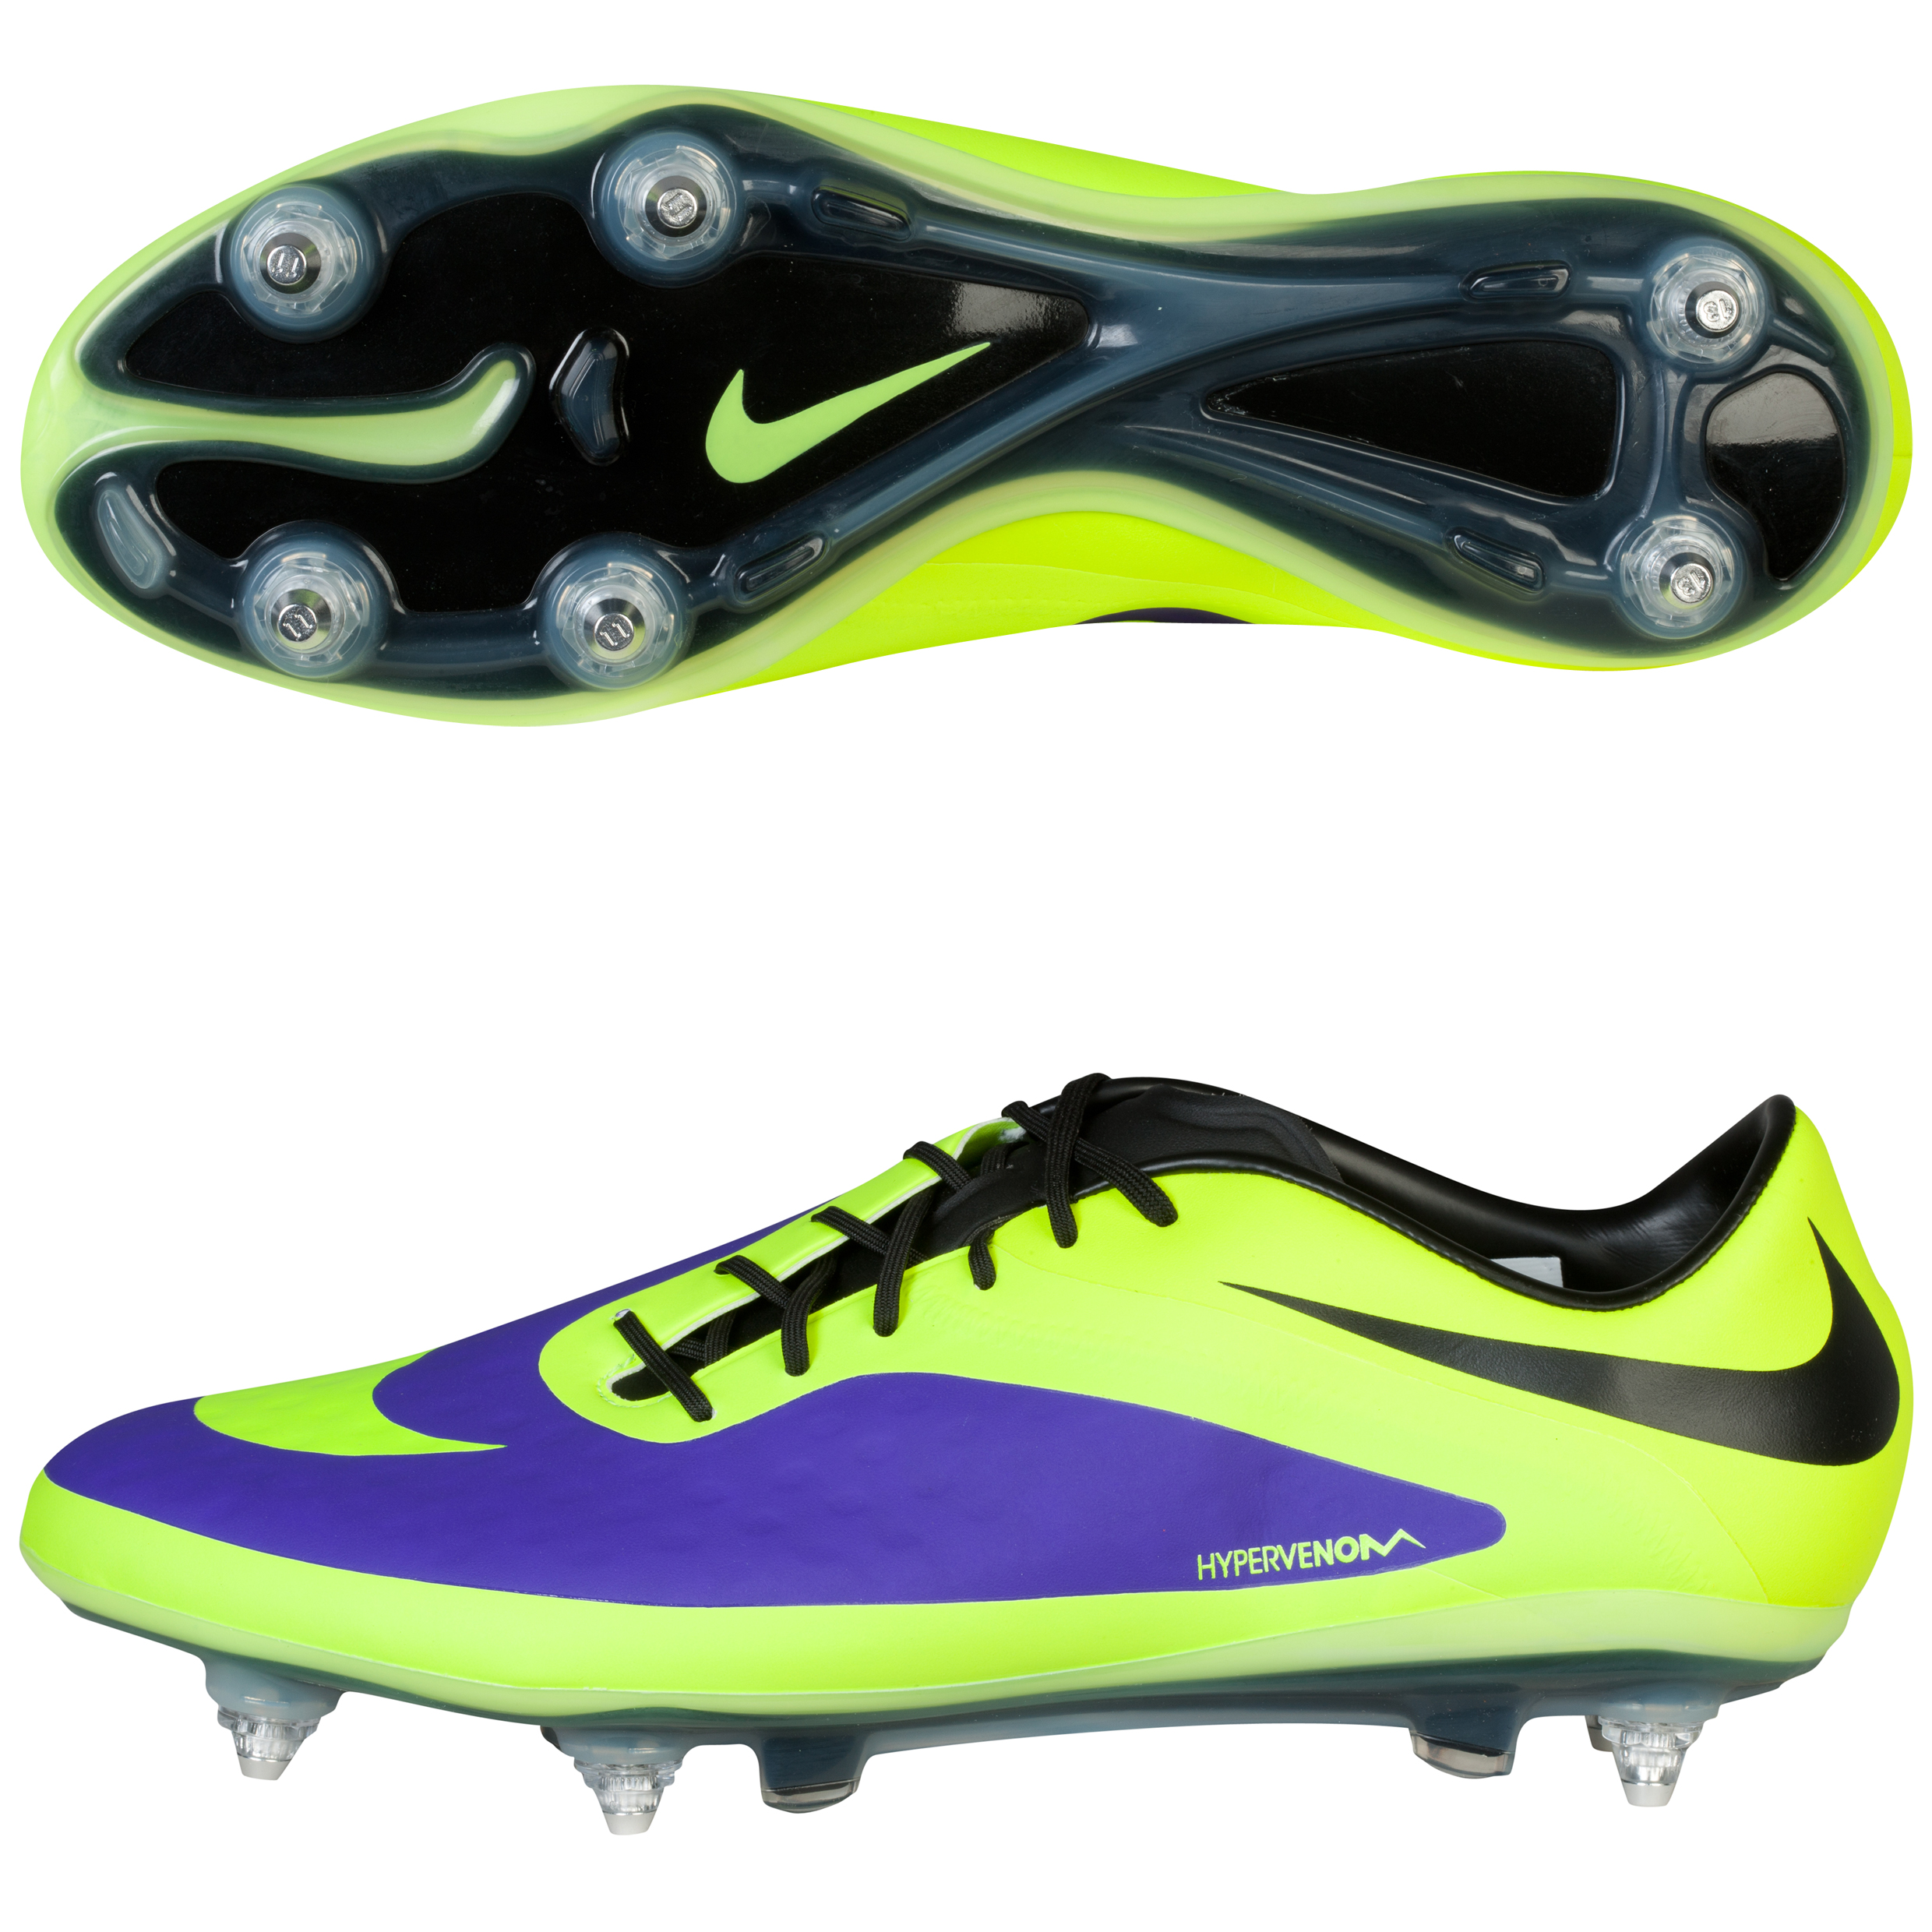 Nike Hypervenom Phatal Soft Ground Football Boots - Electro Purple/Volt/Black Purple